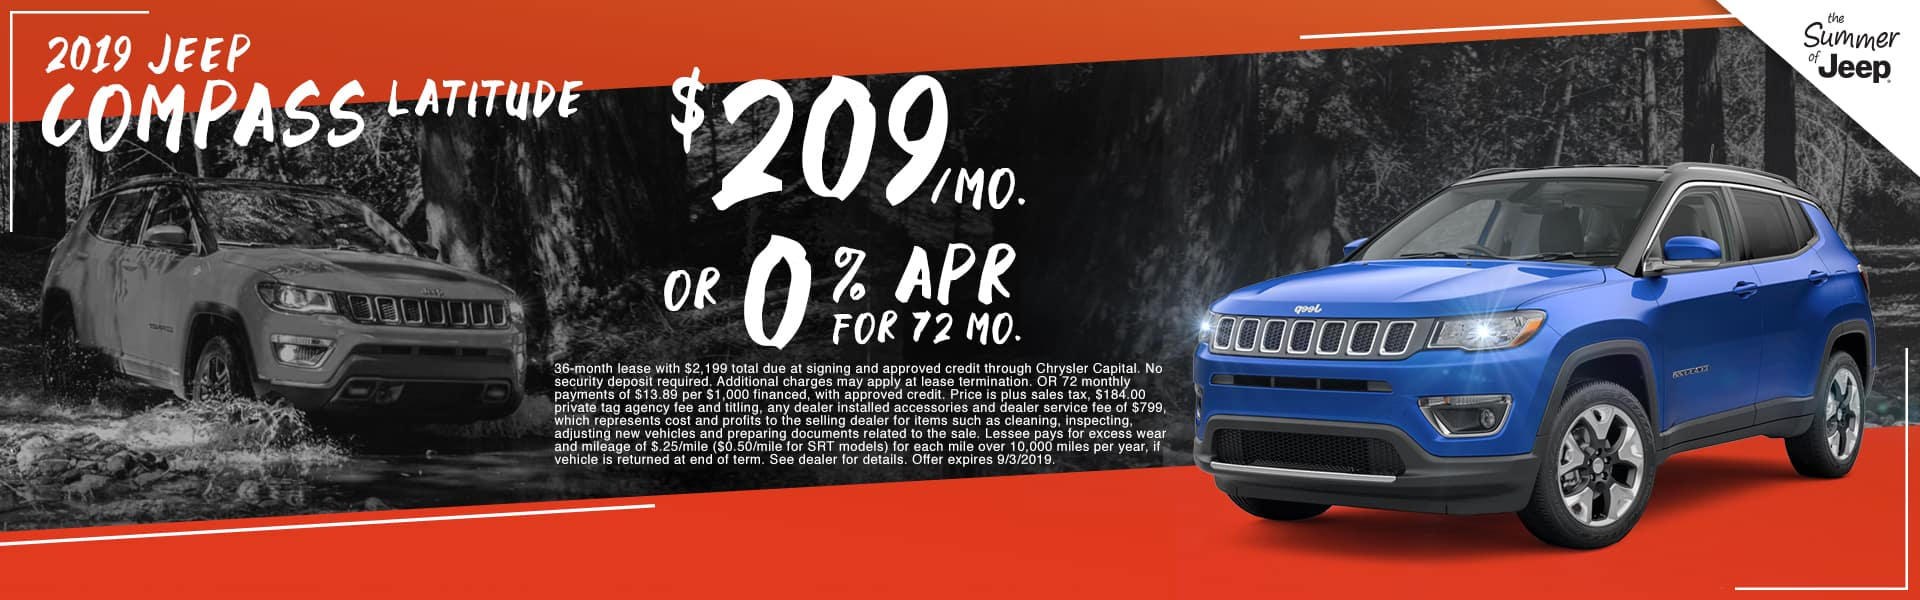 2019 Jeep Compass Latitude | $209 Per Month OR 0% APR For 72 Months